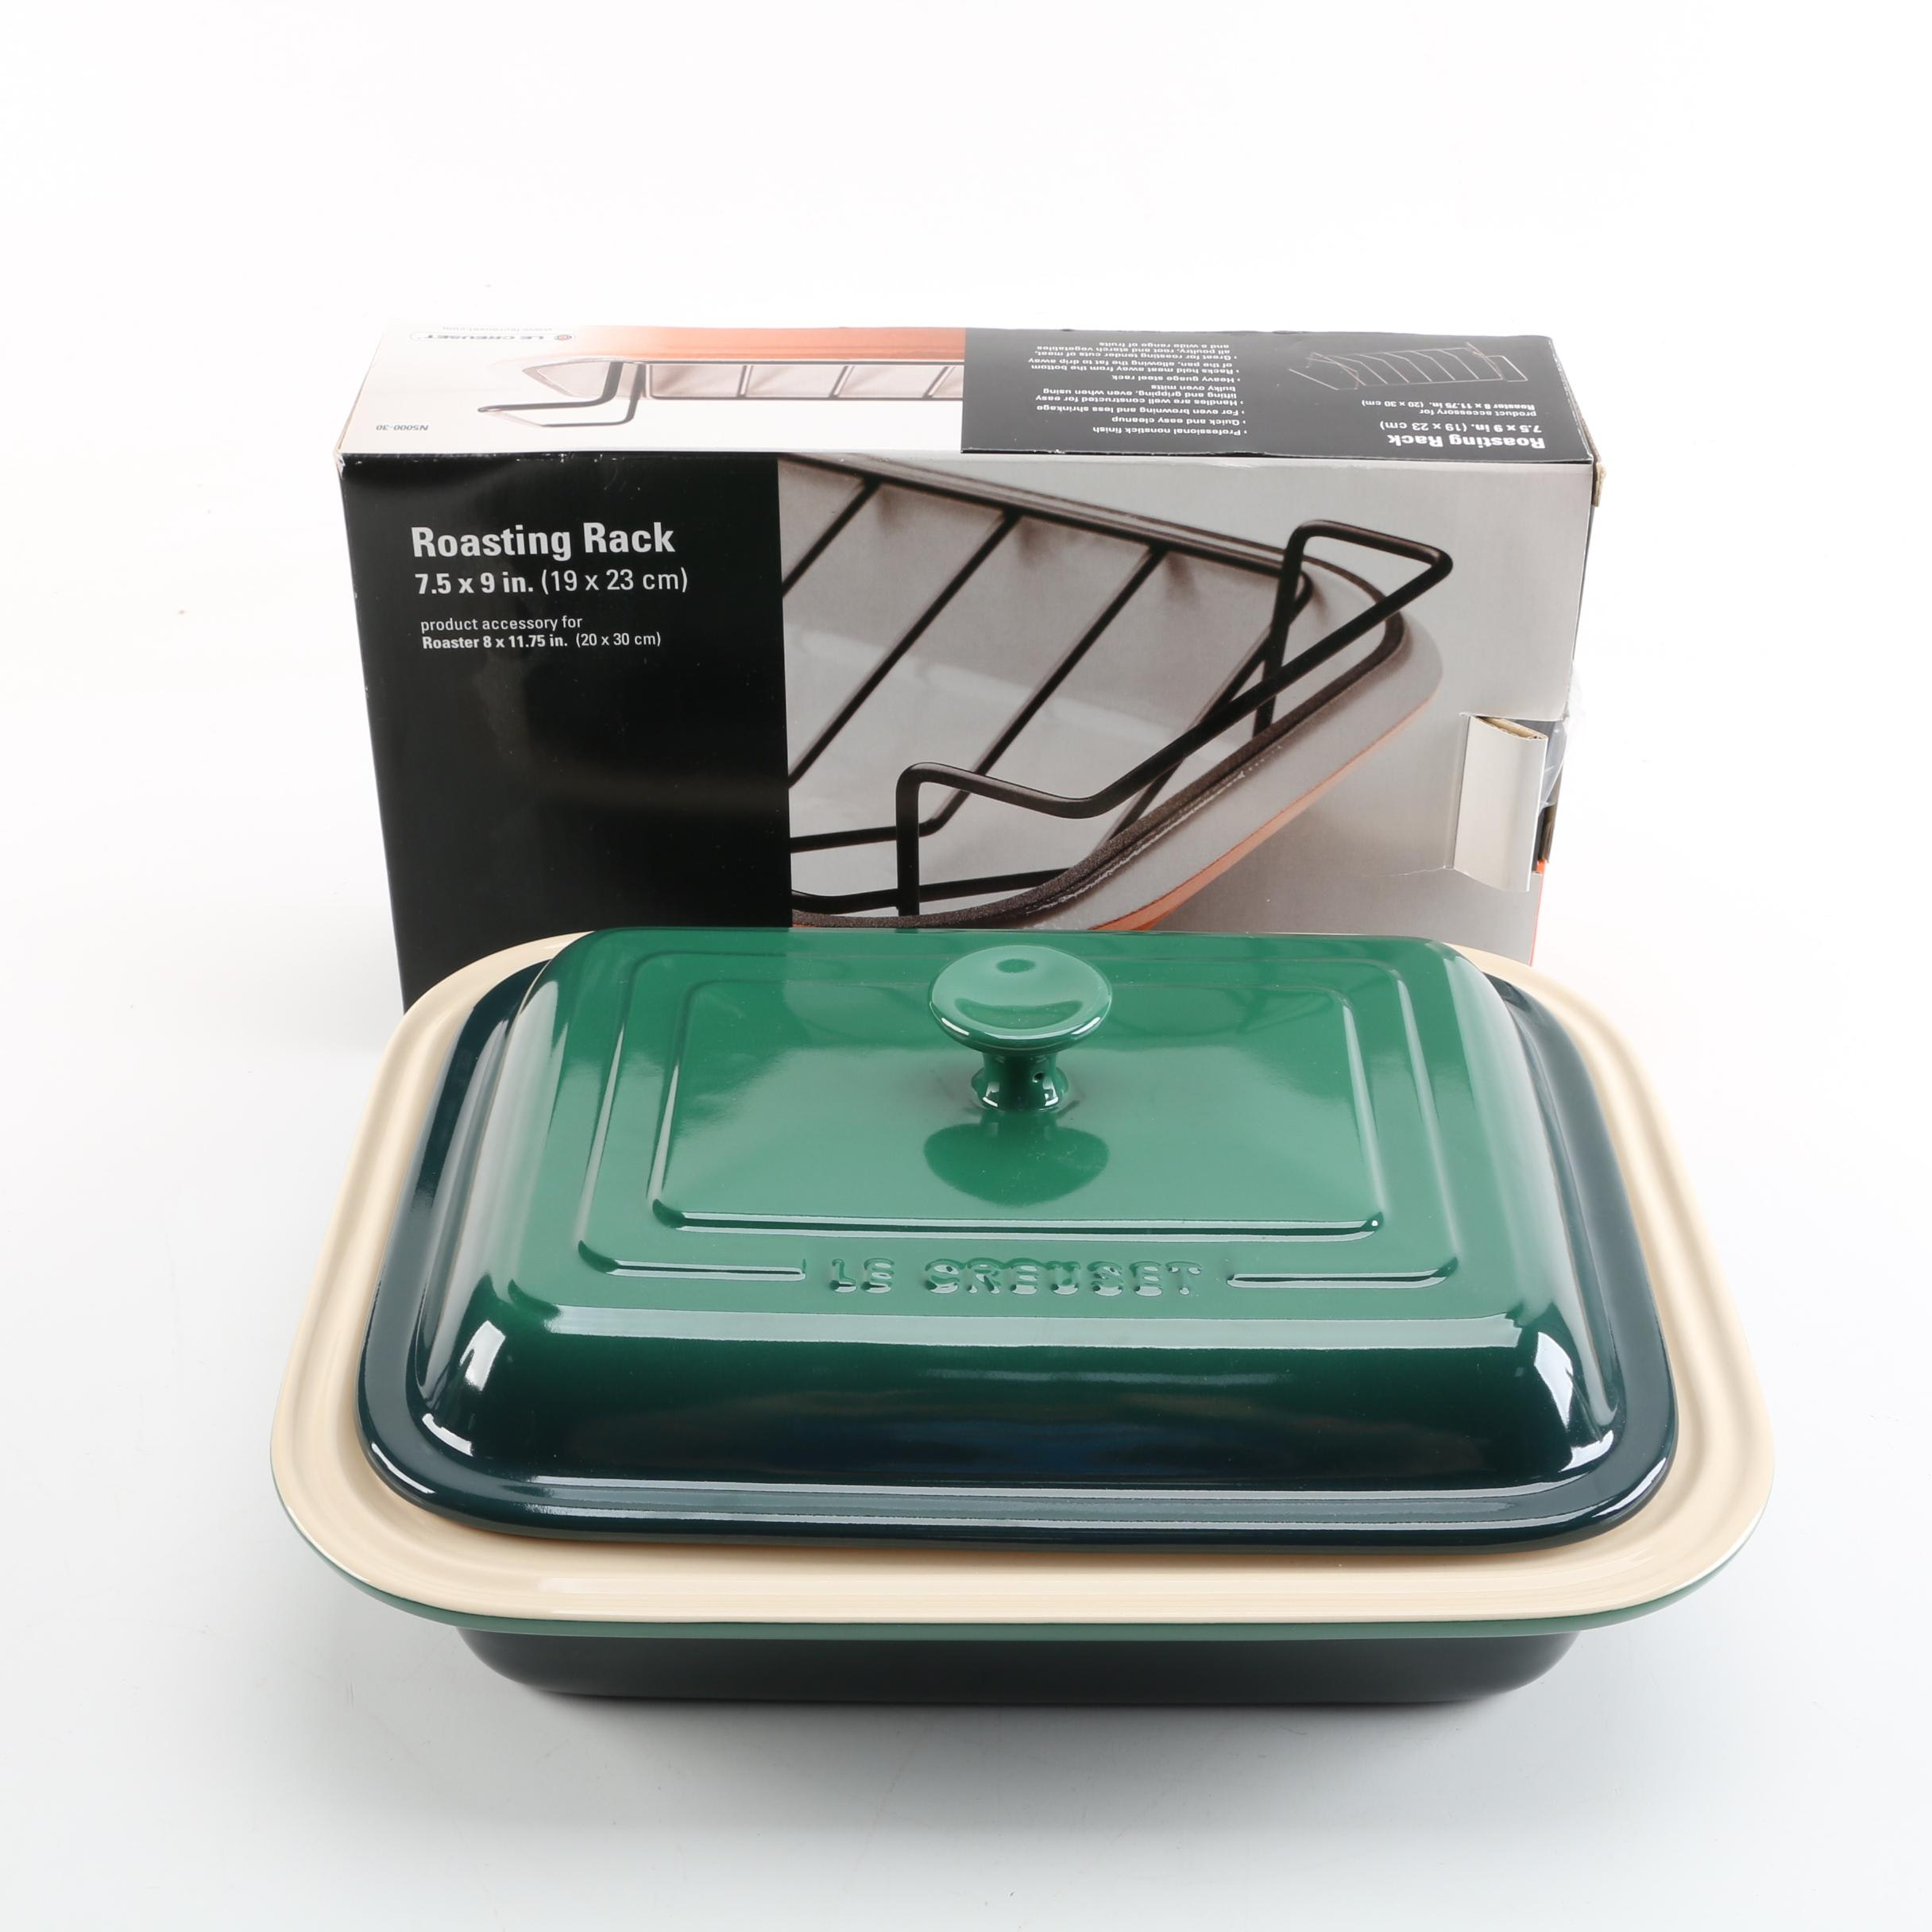 Le Creuset Roasting Rack and Baking Dish